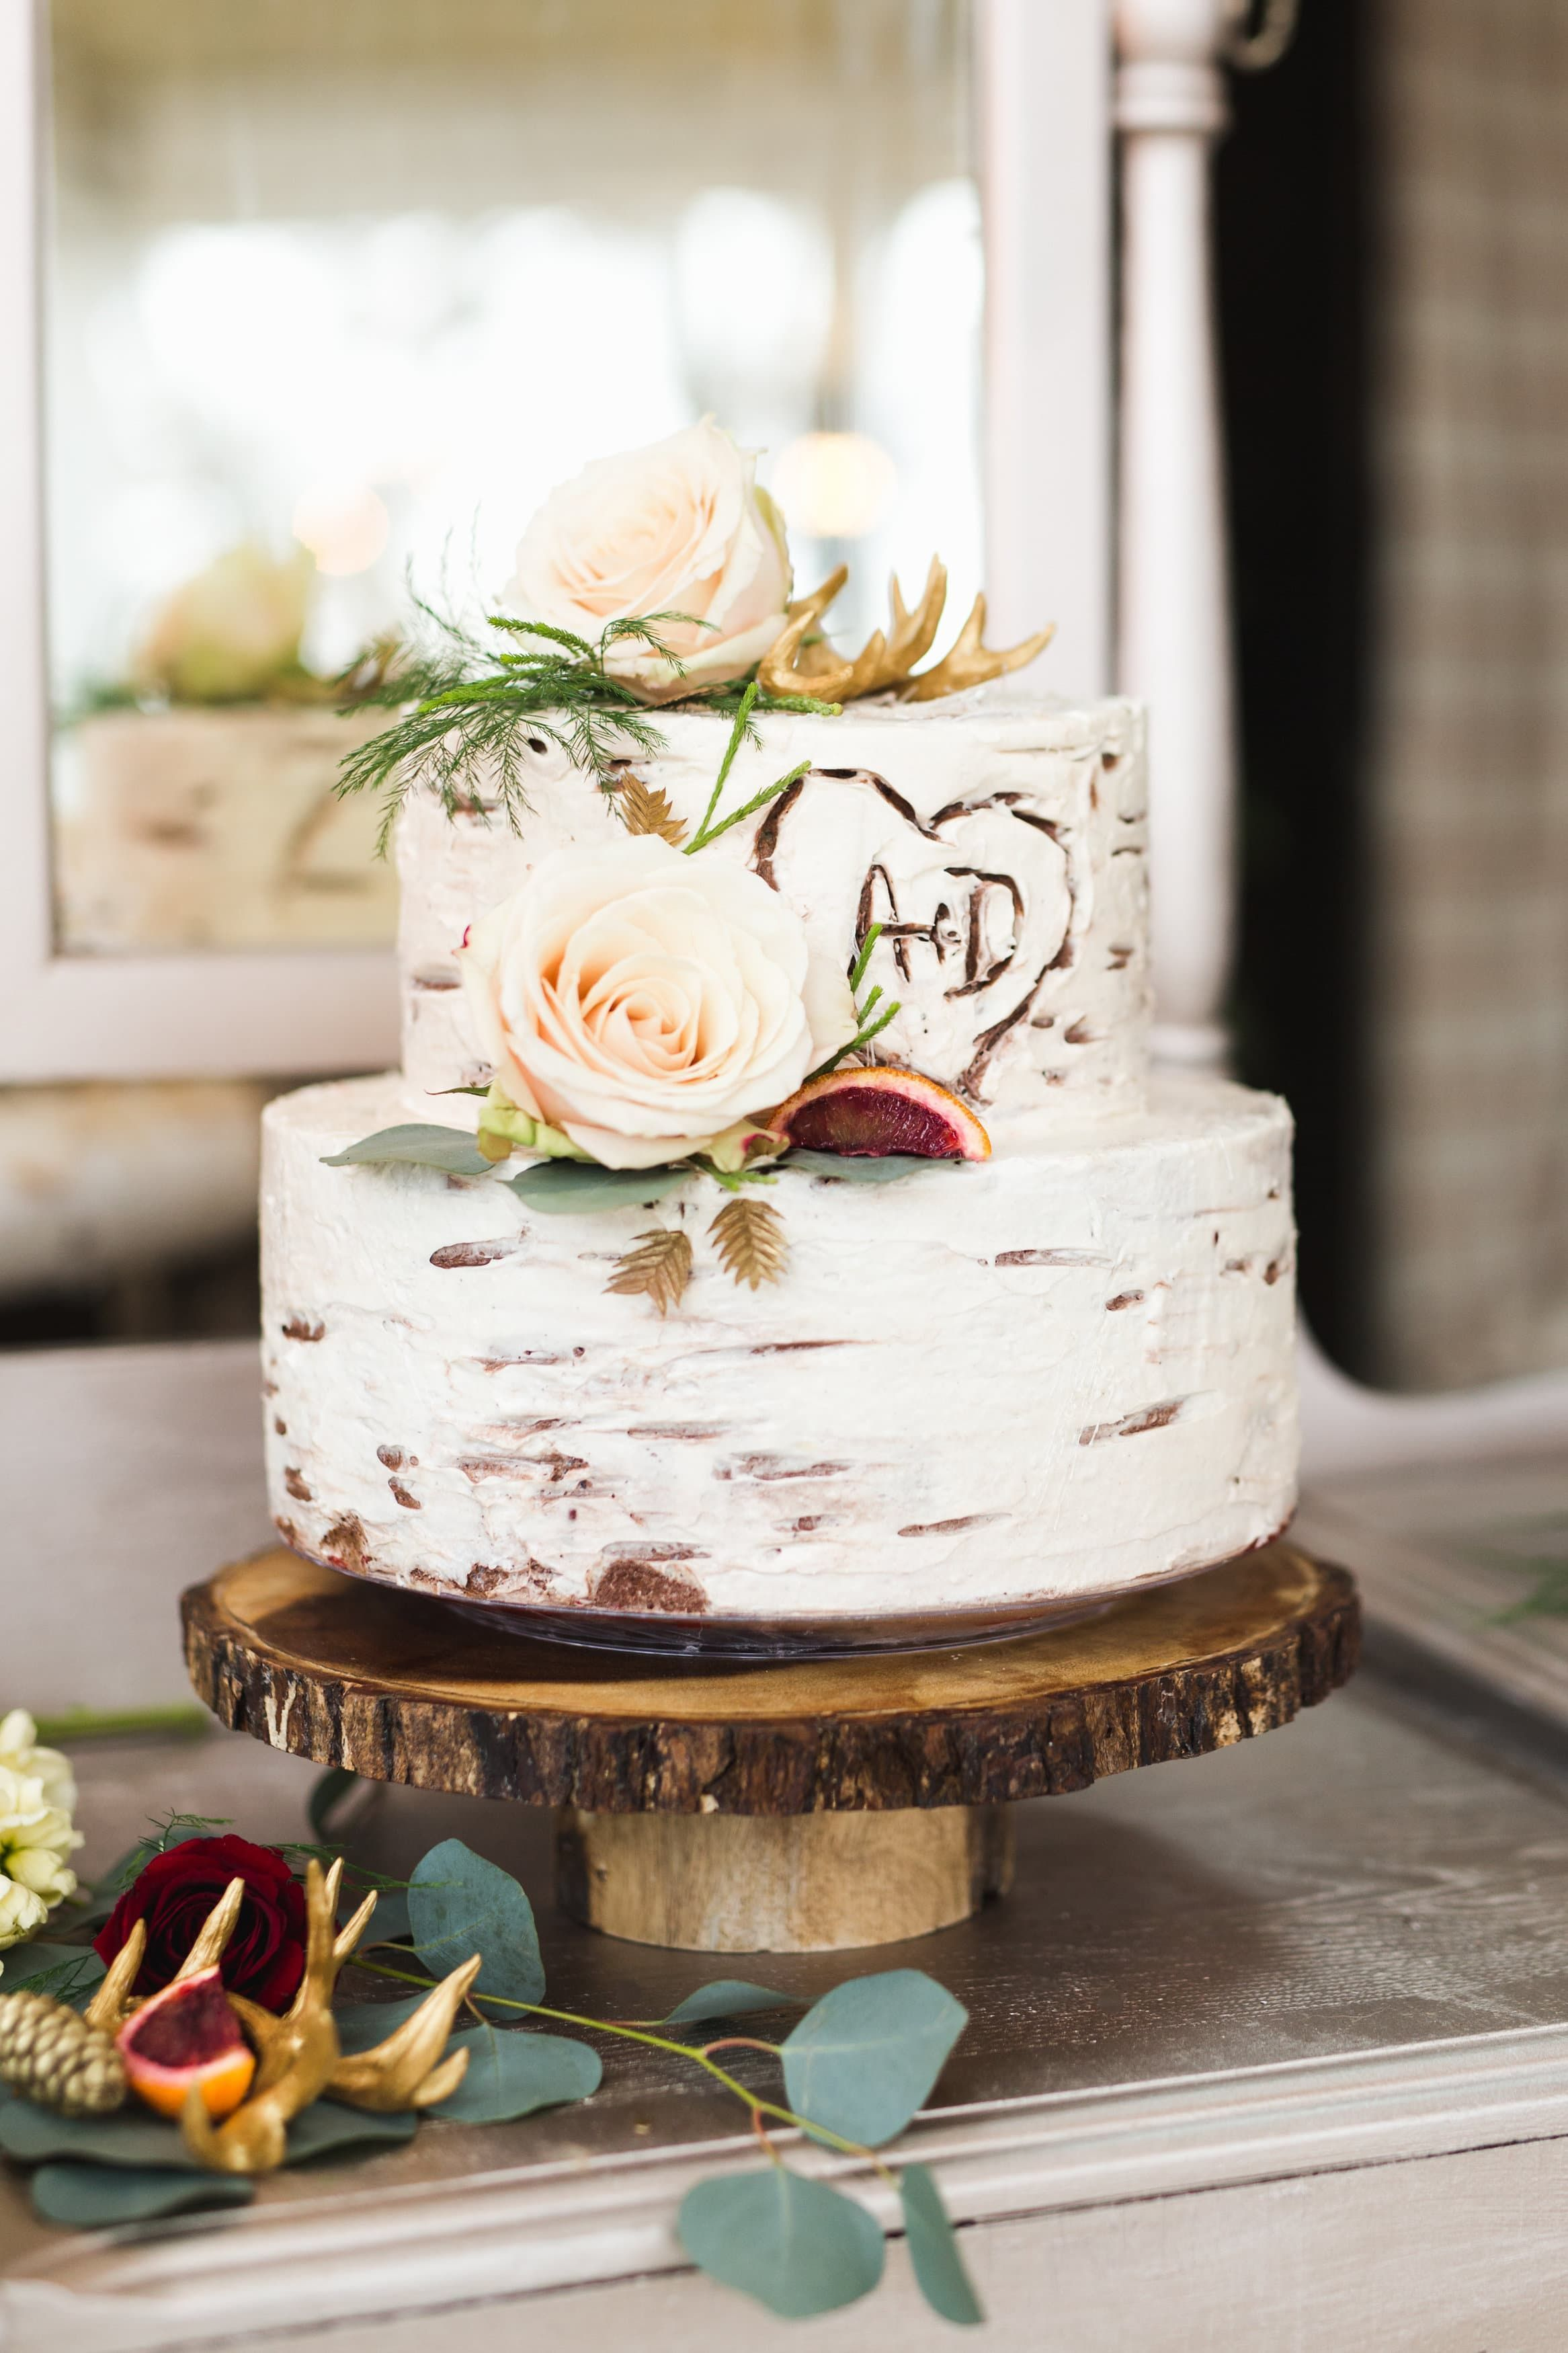 wedding cake ideas rustic rustic inspiration wedding cake ideas wedding 22934